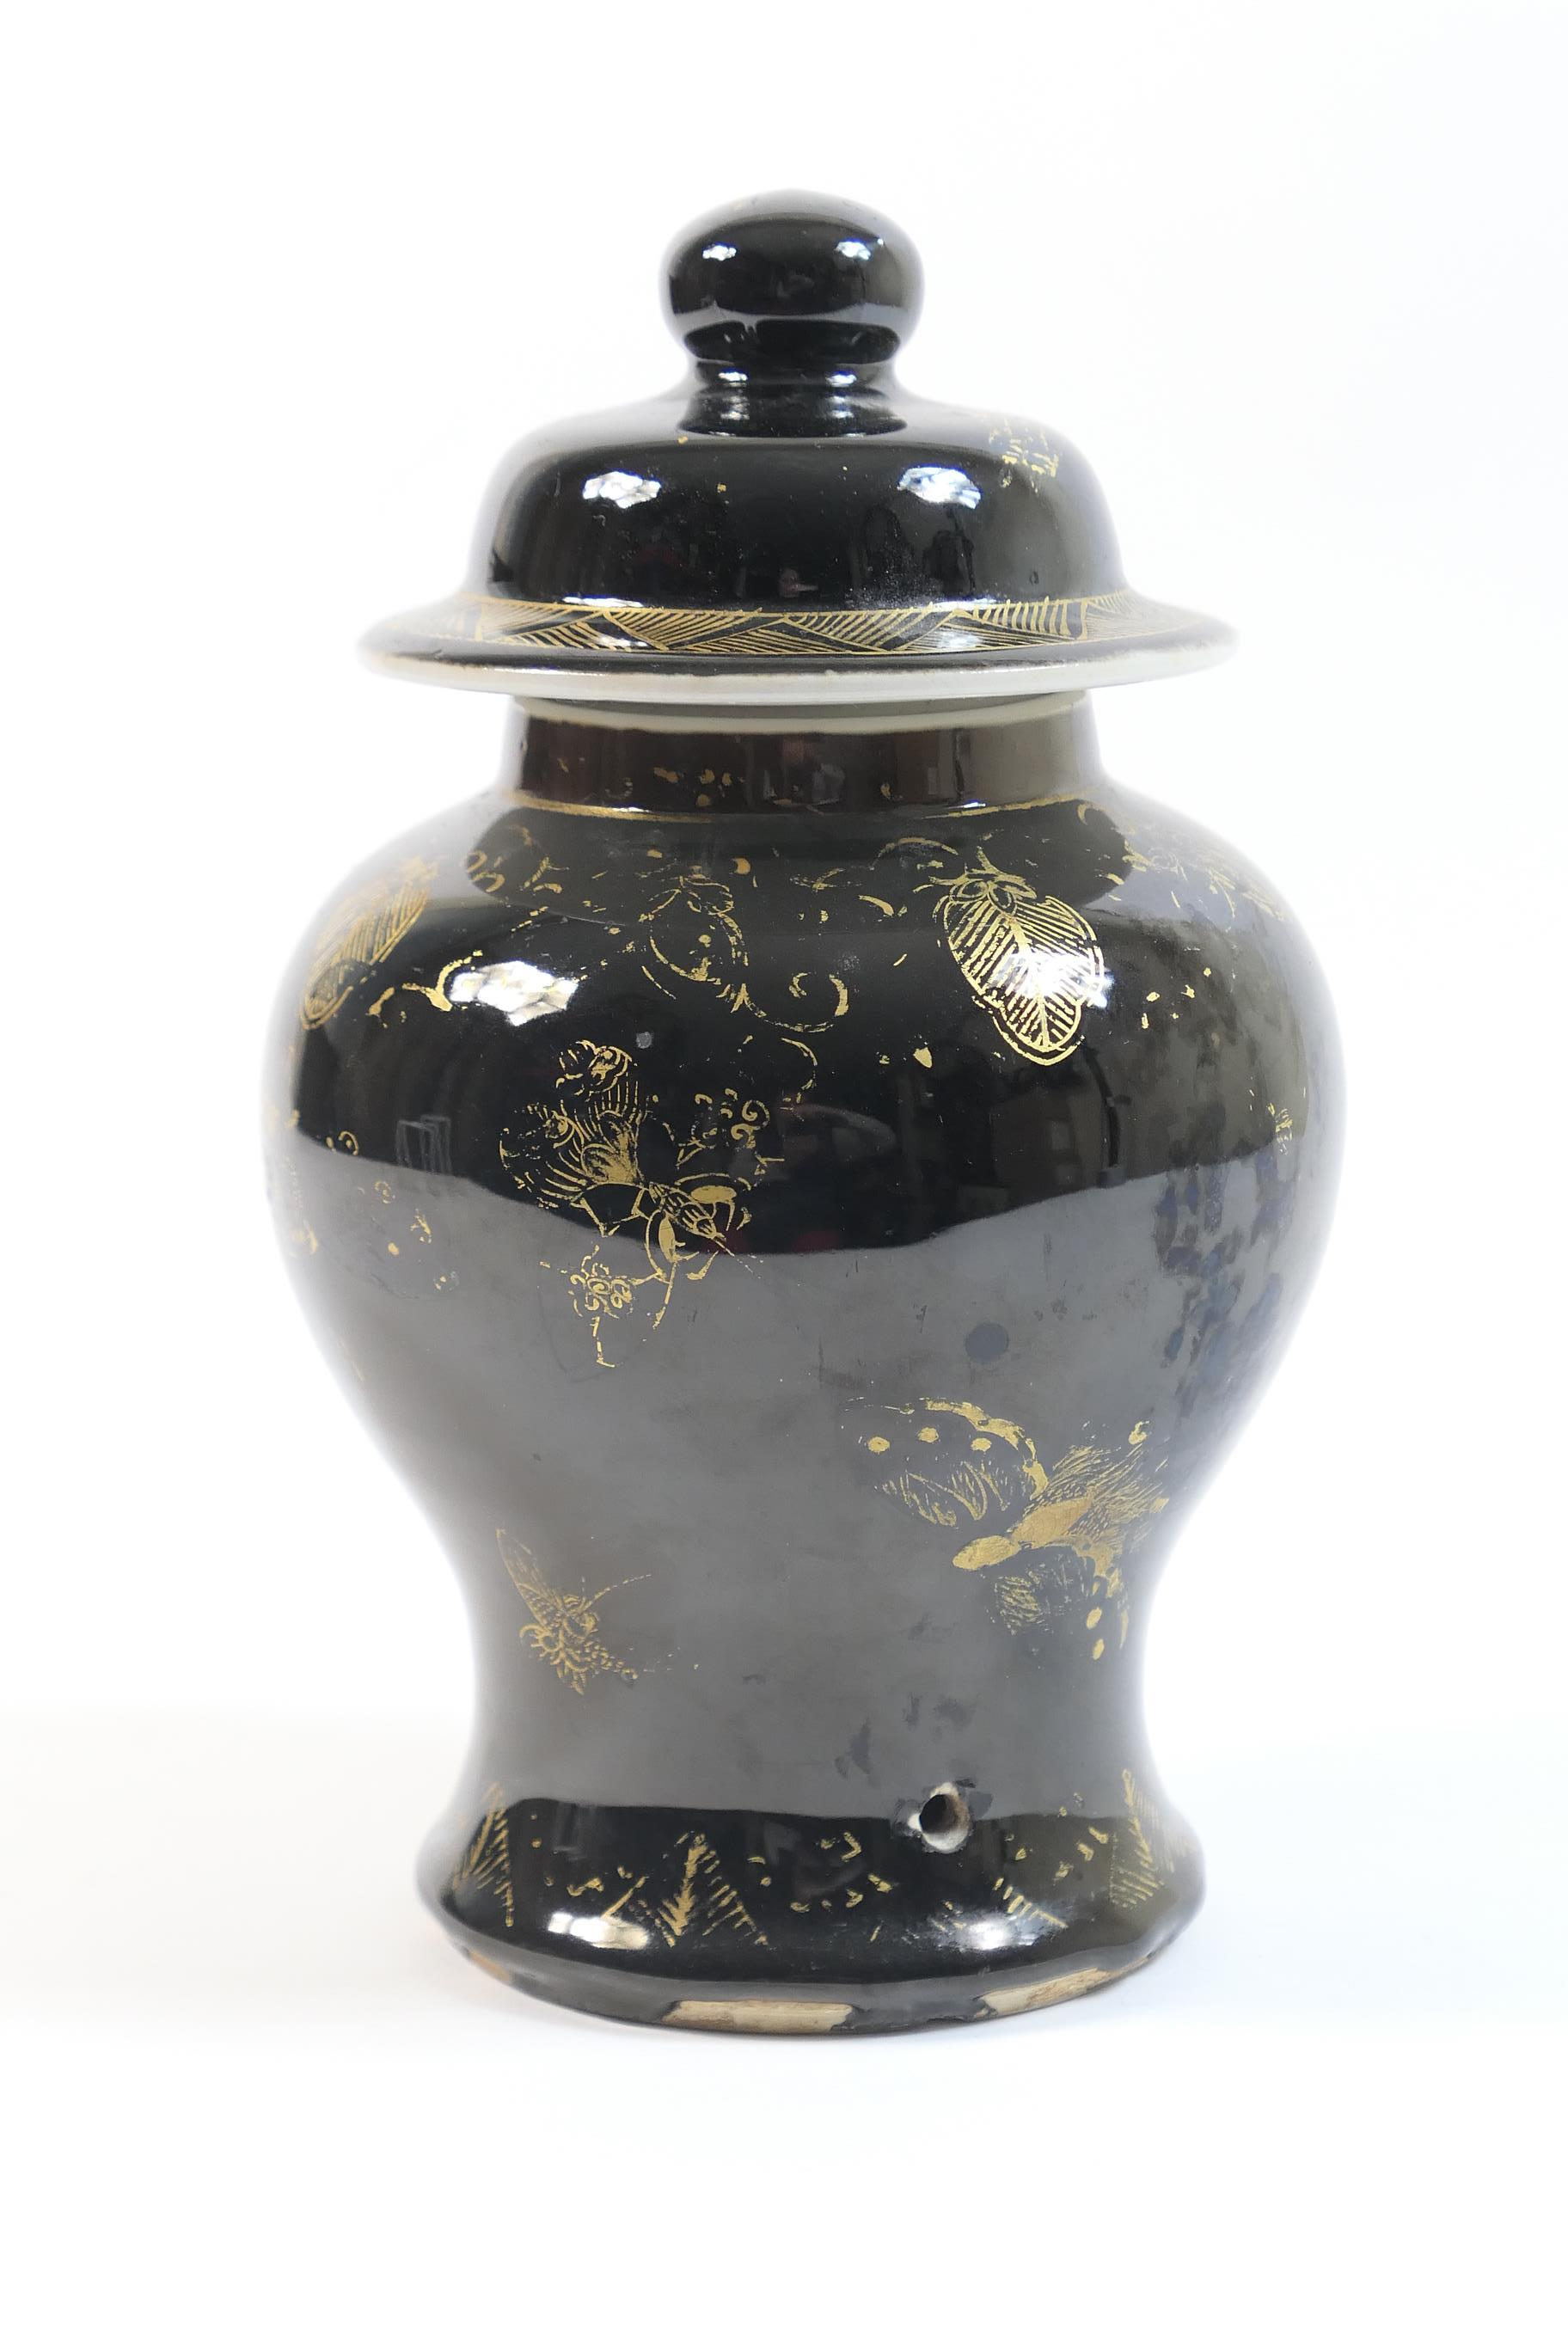 Lot 45 - Chinese mirror black lidded jar, 19th Century, of inverted baluster form with a domed cover, with